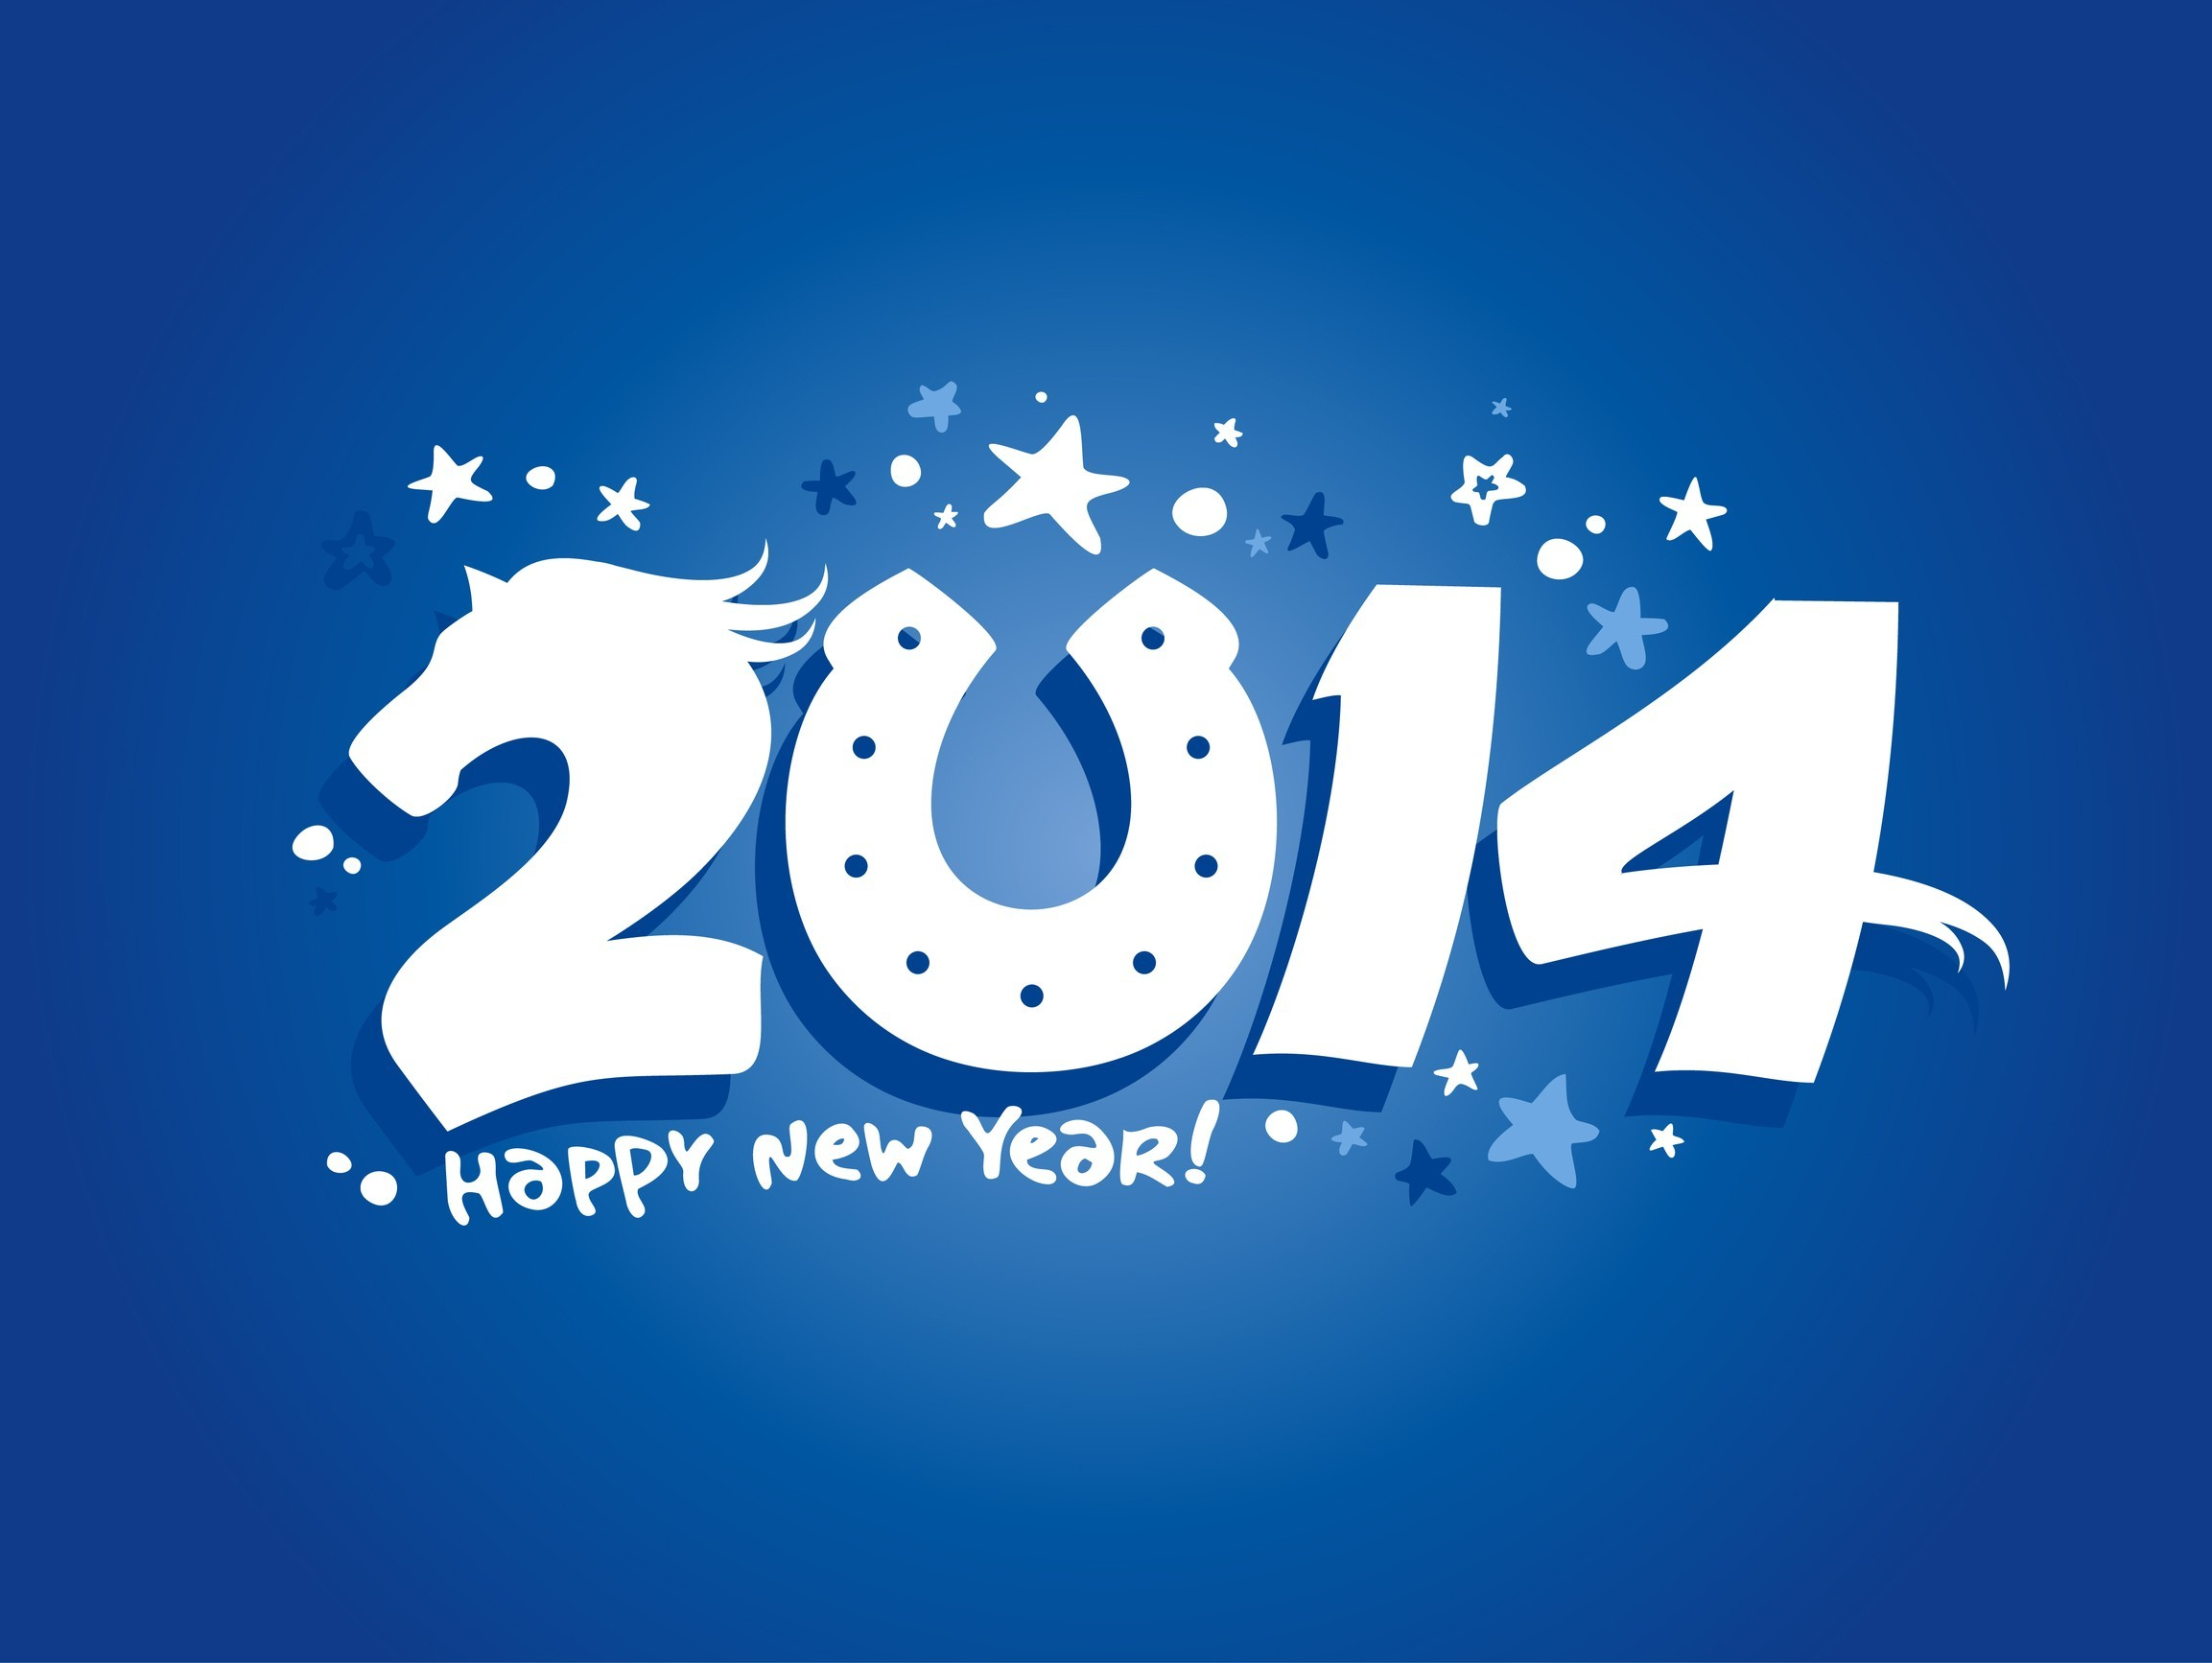 Beautiful-Happy-New-Year-2014-HD-Wallpapers-by-techblogstop-28